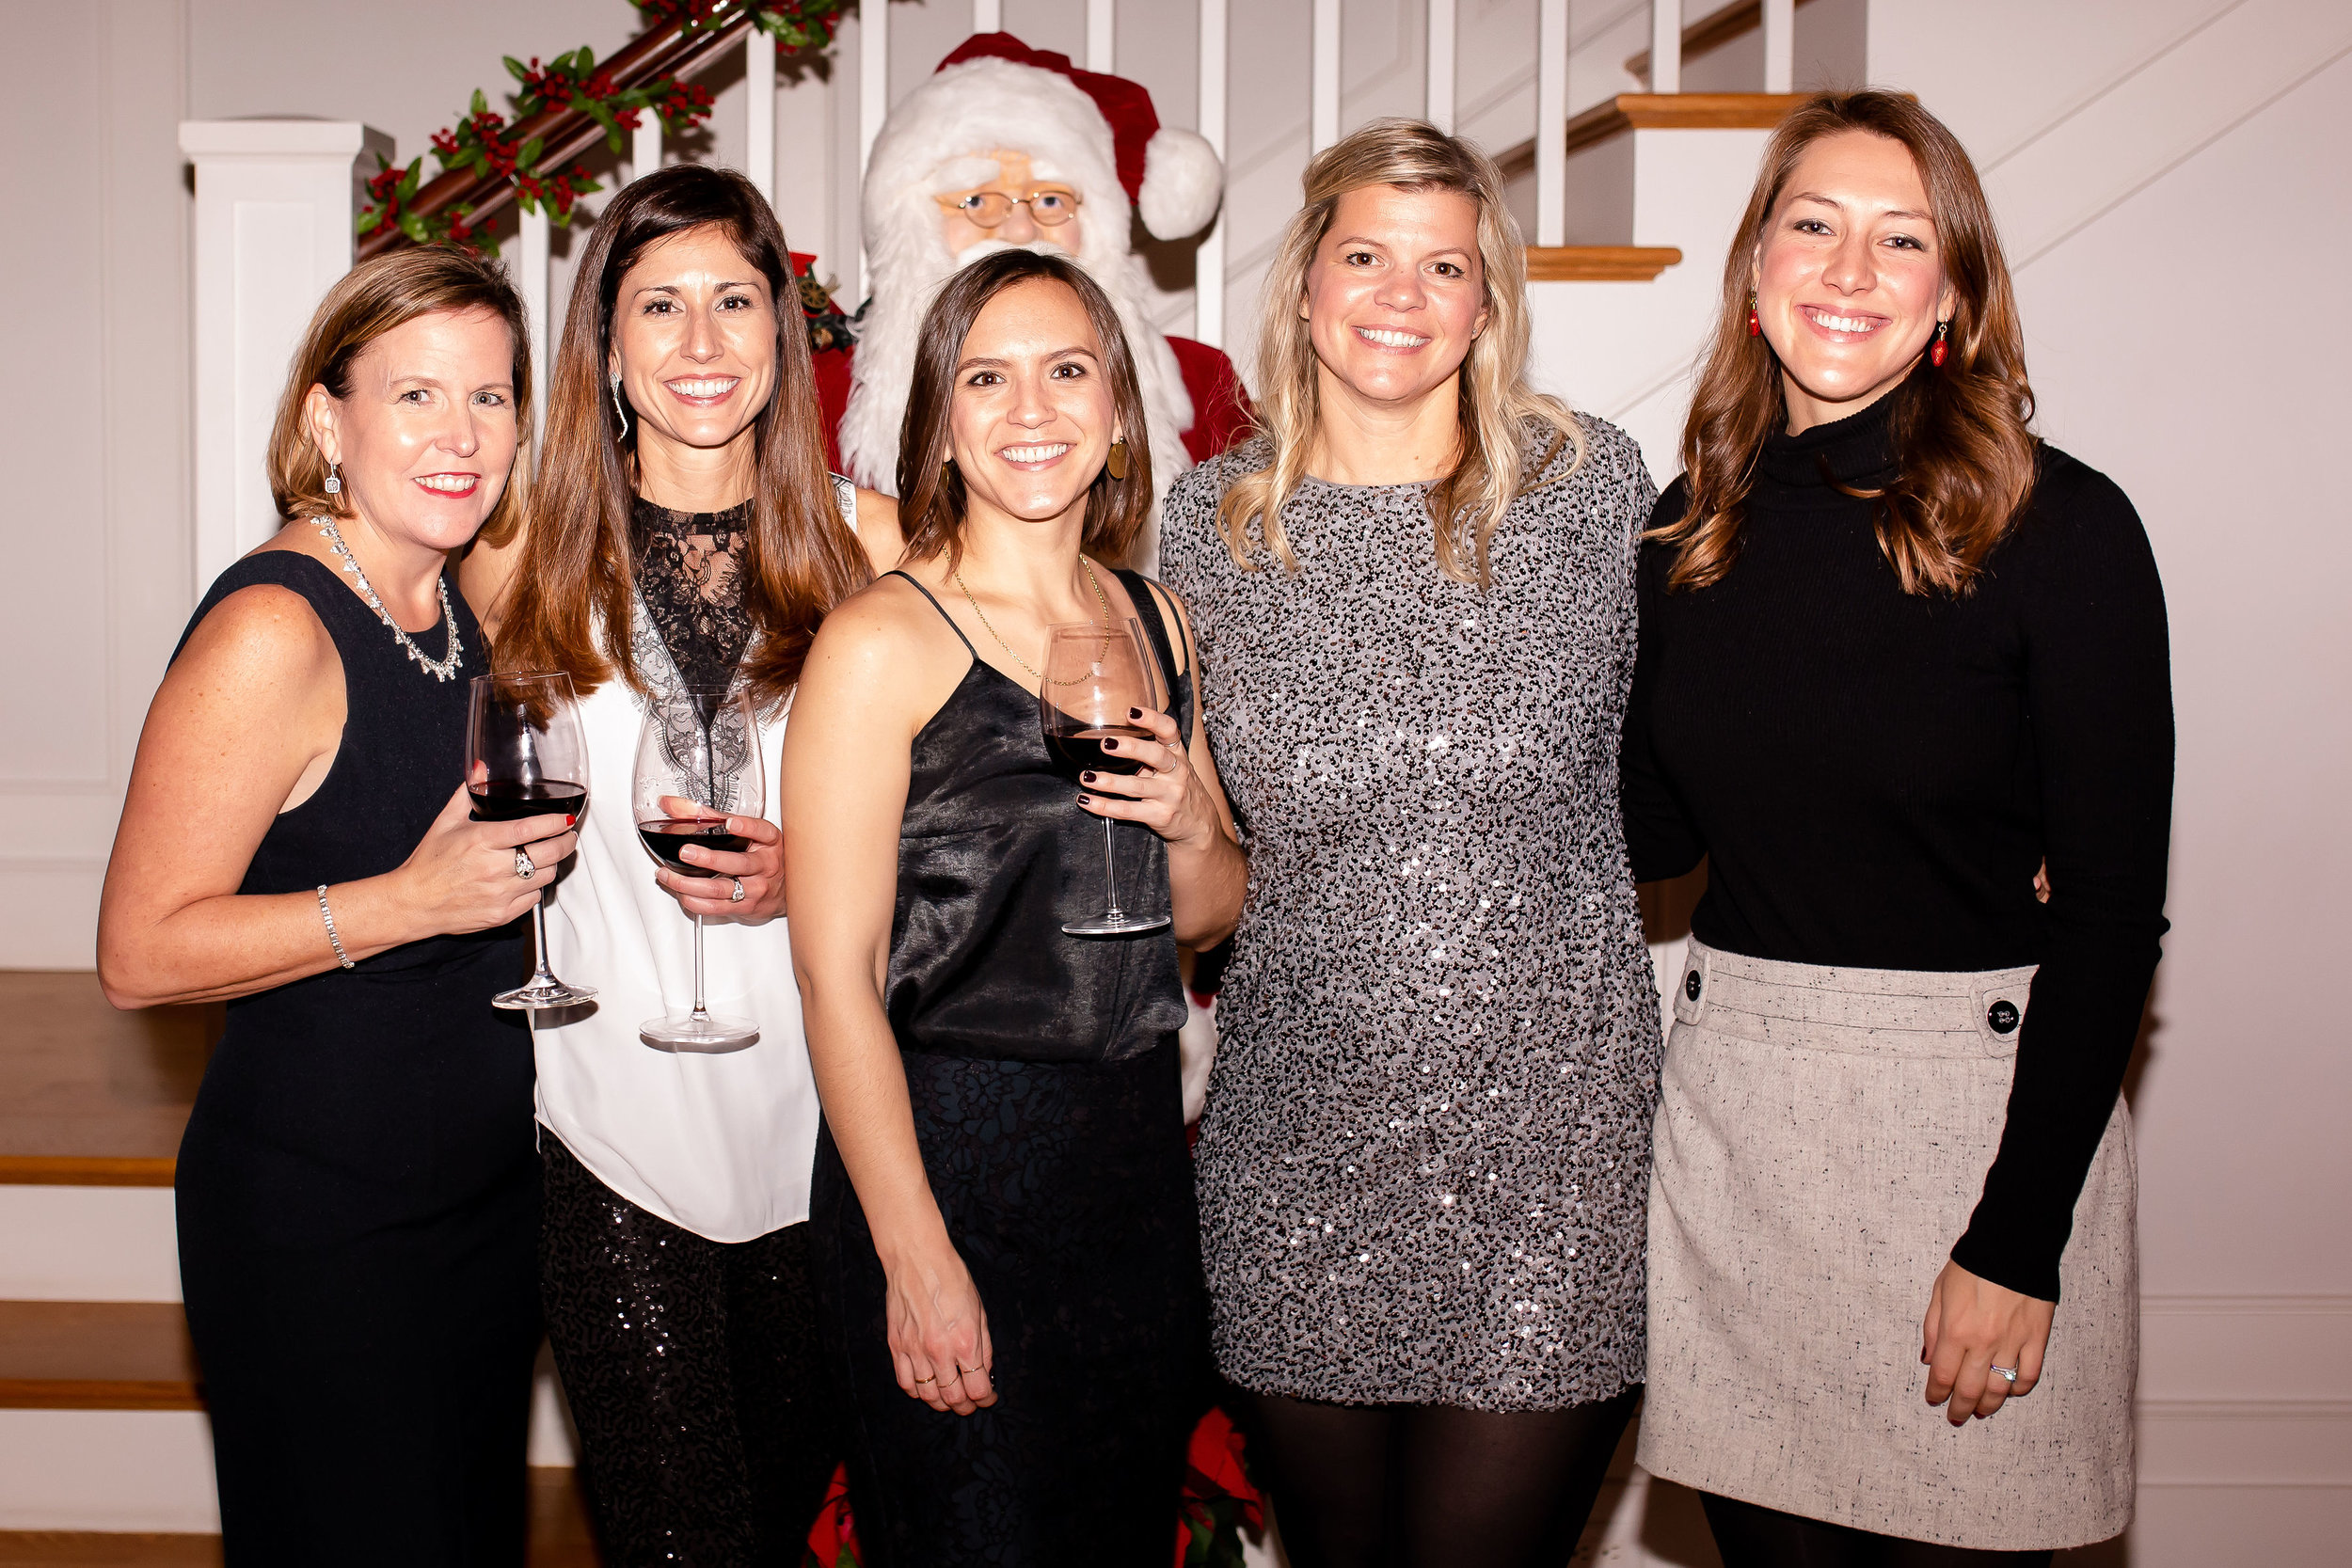 Marketing team at the holiday party